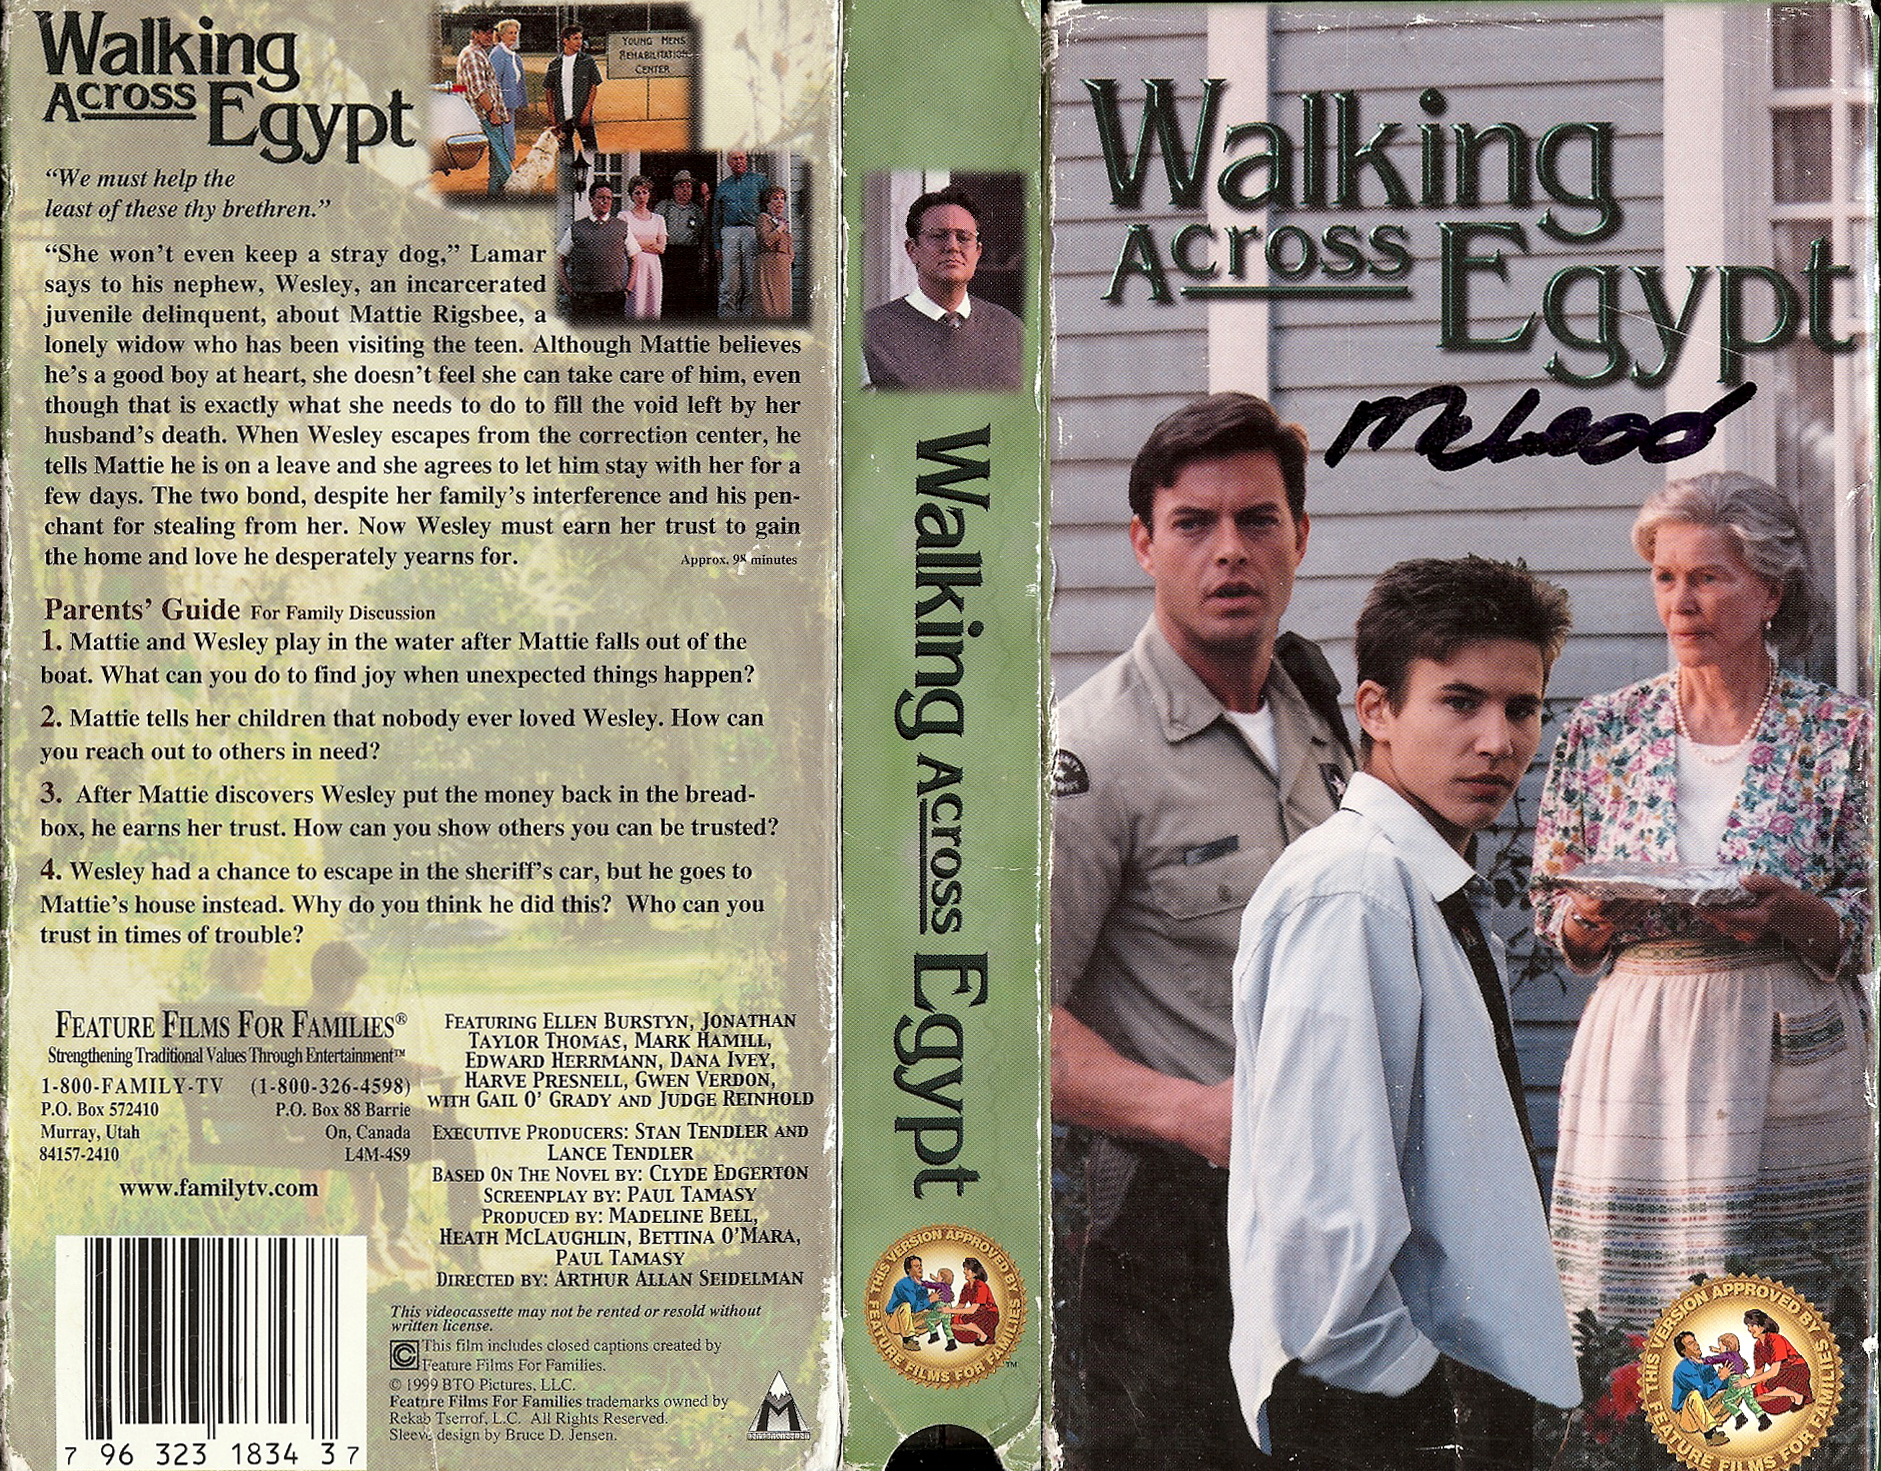 walking across egypt Get this from a library walking across egypt [clyde edgerton norman deitz] -- 78-year-old mattie rigsby tries to keep her life orderly when she meets wesley benfield, she has to make a choice - between friendship and order.